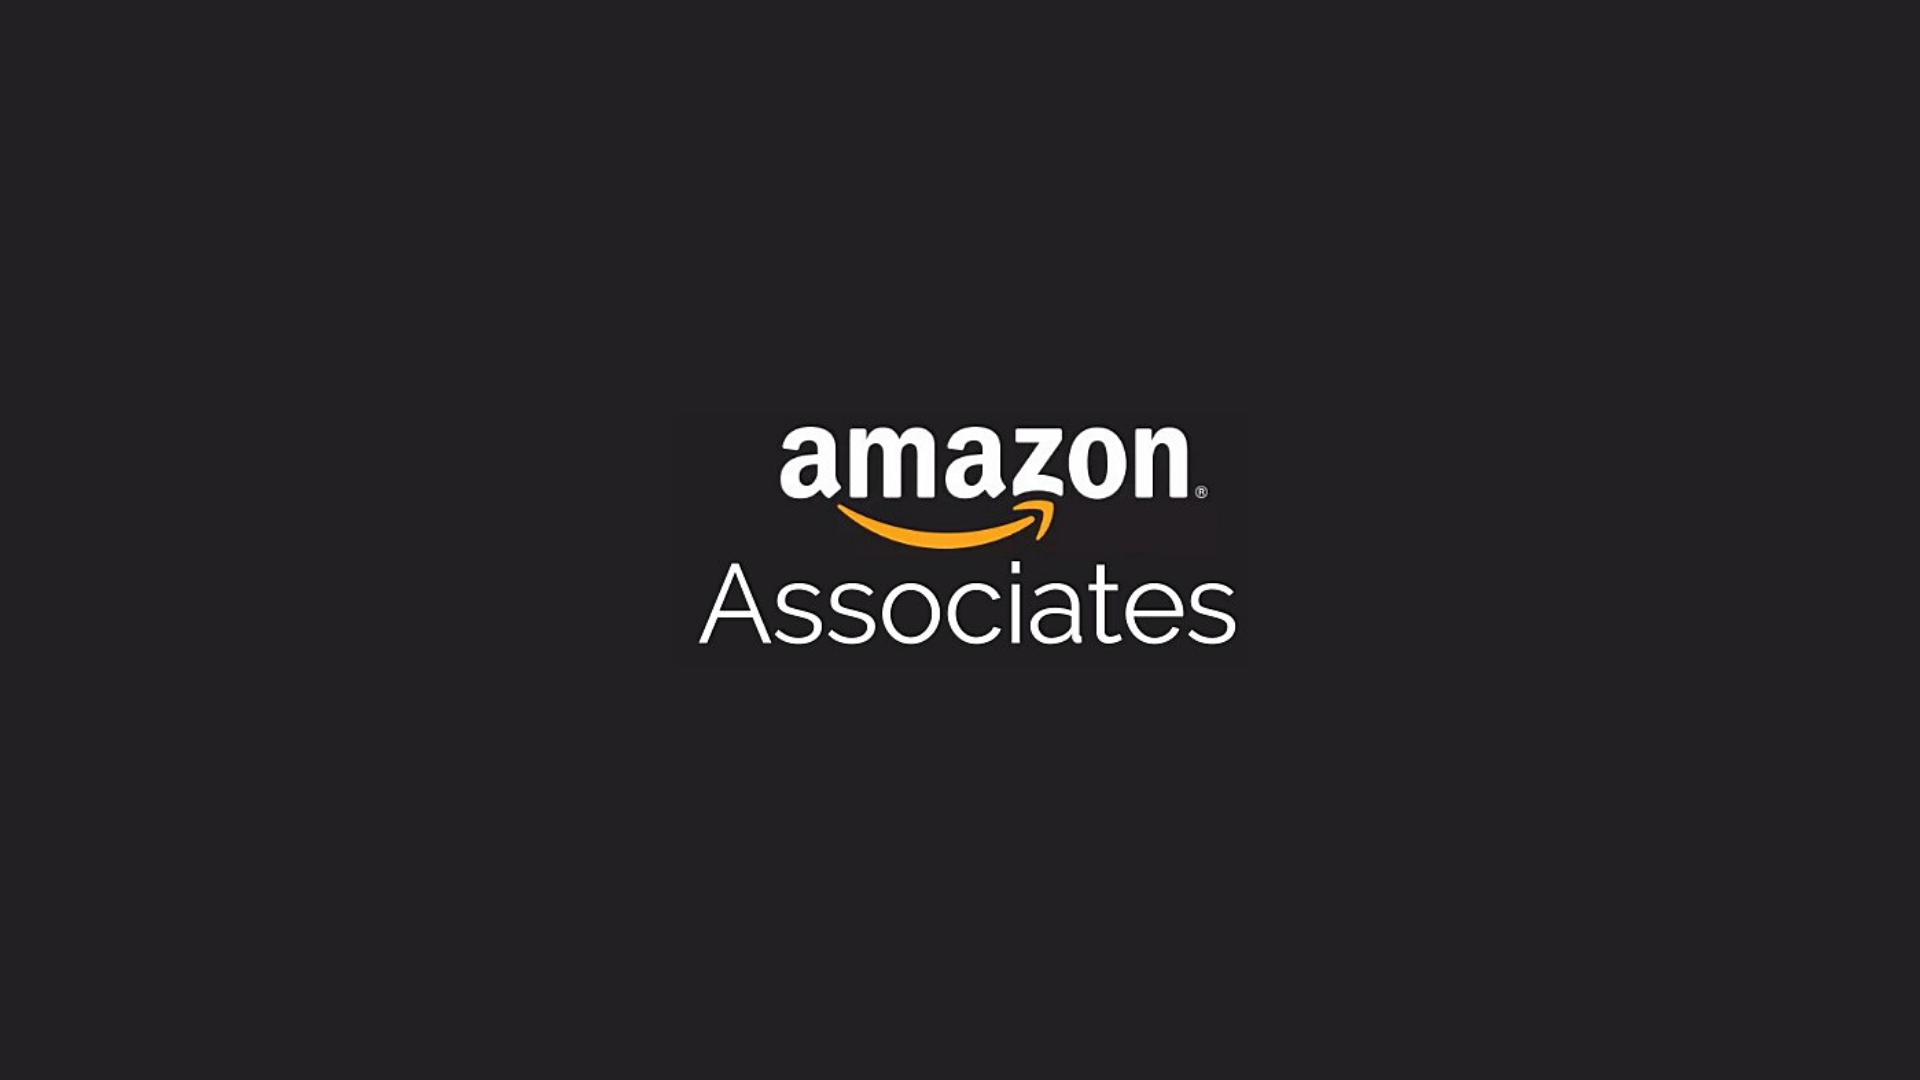 How to Join Amazon Associates as an Affiliate